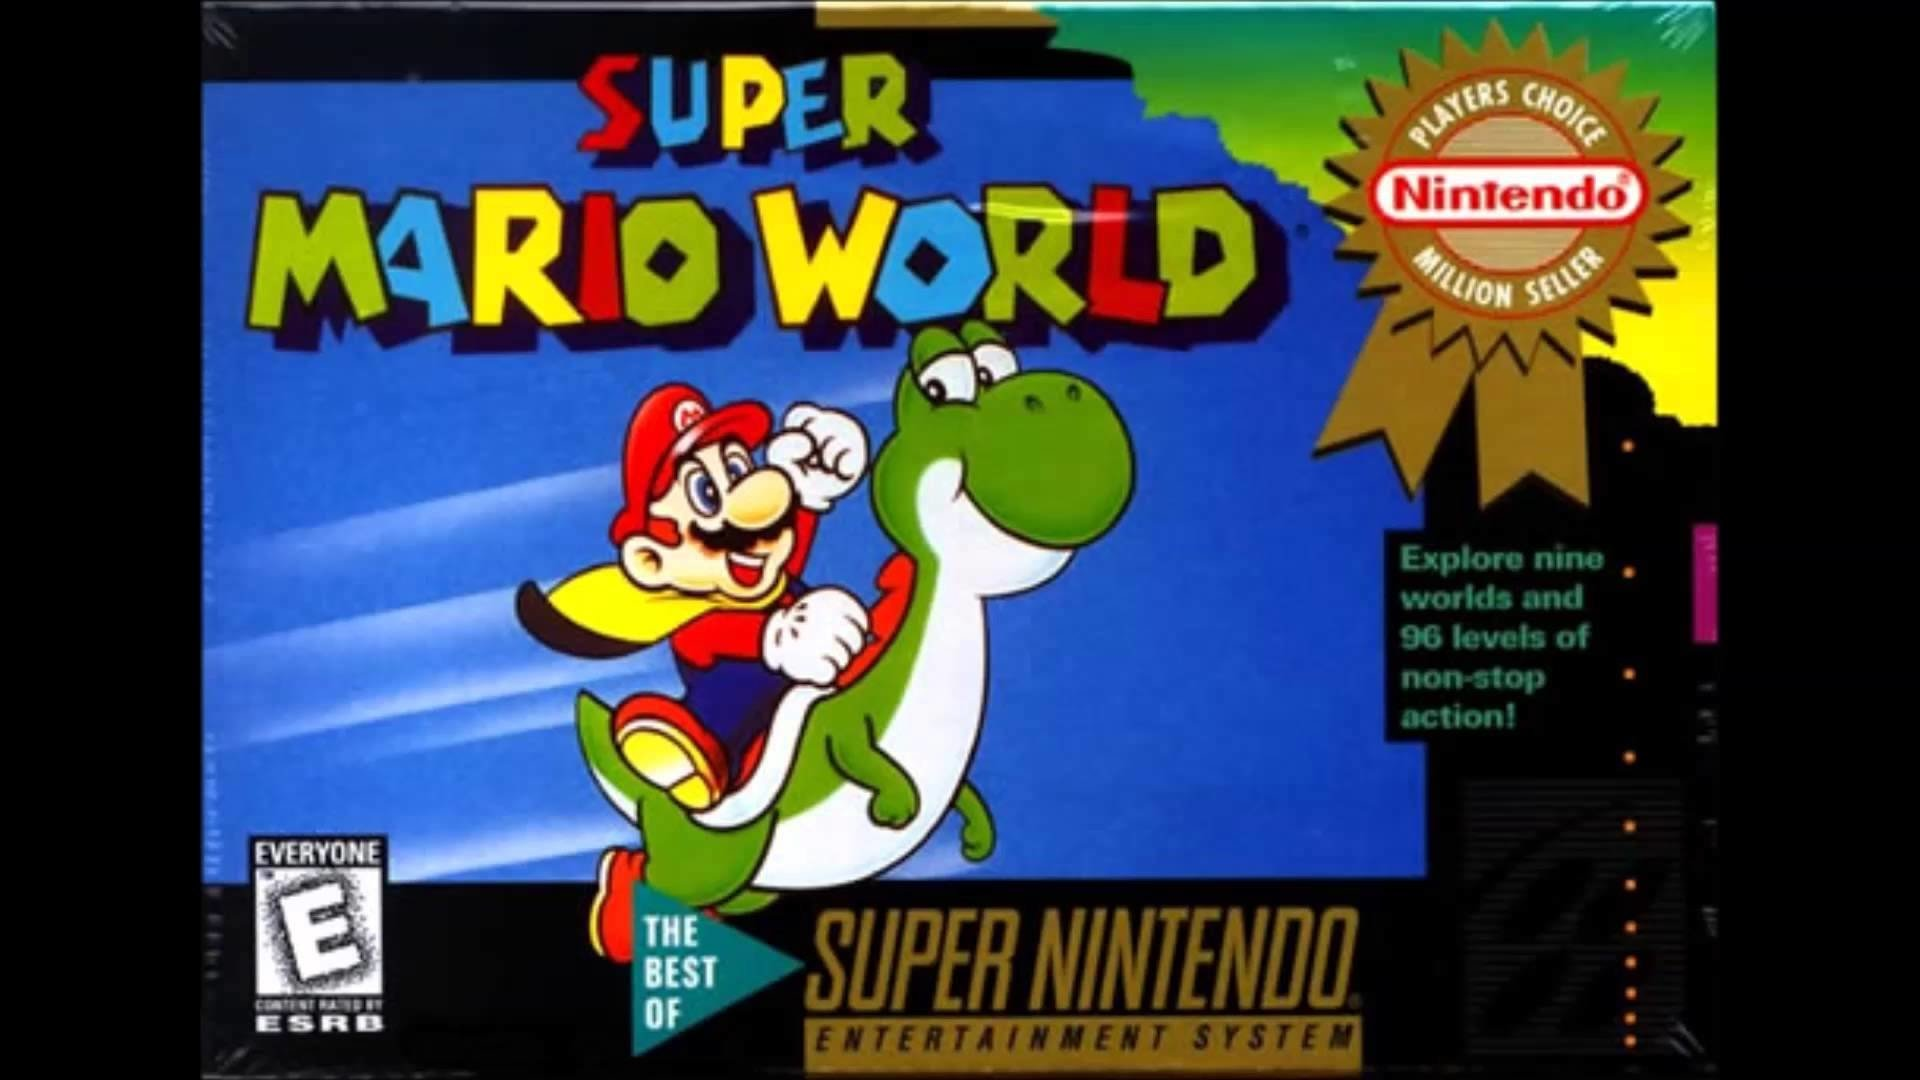 super mario secrets 1 Someone Discovered A Super Mario World Secret, 26 Years After The Game Was Released